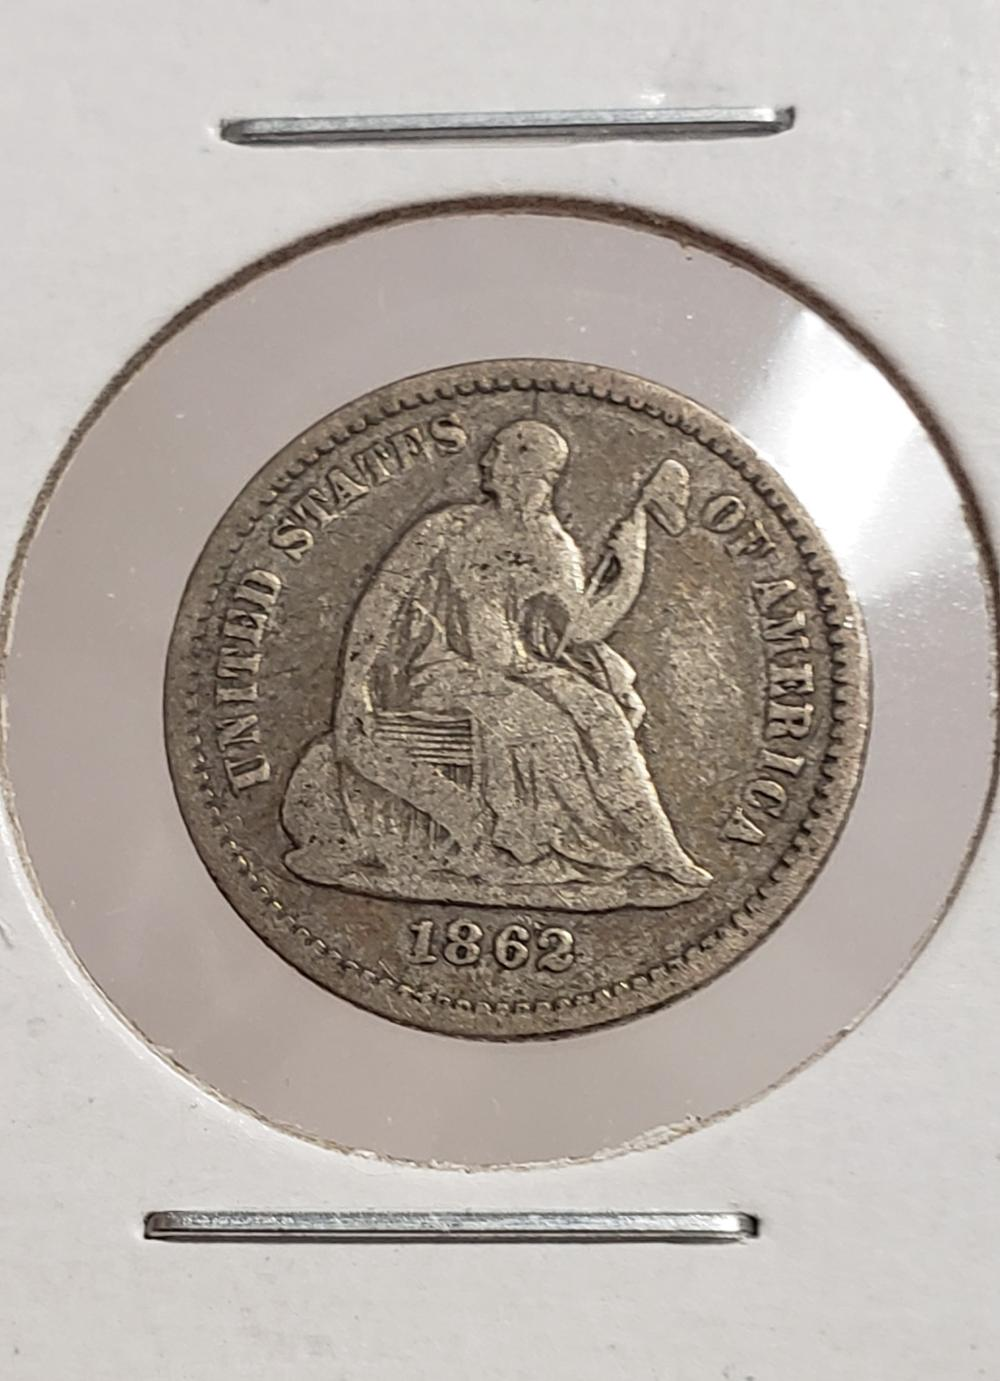 1862 Seated Liberty Half Dime silver